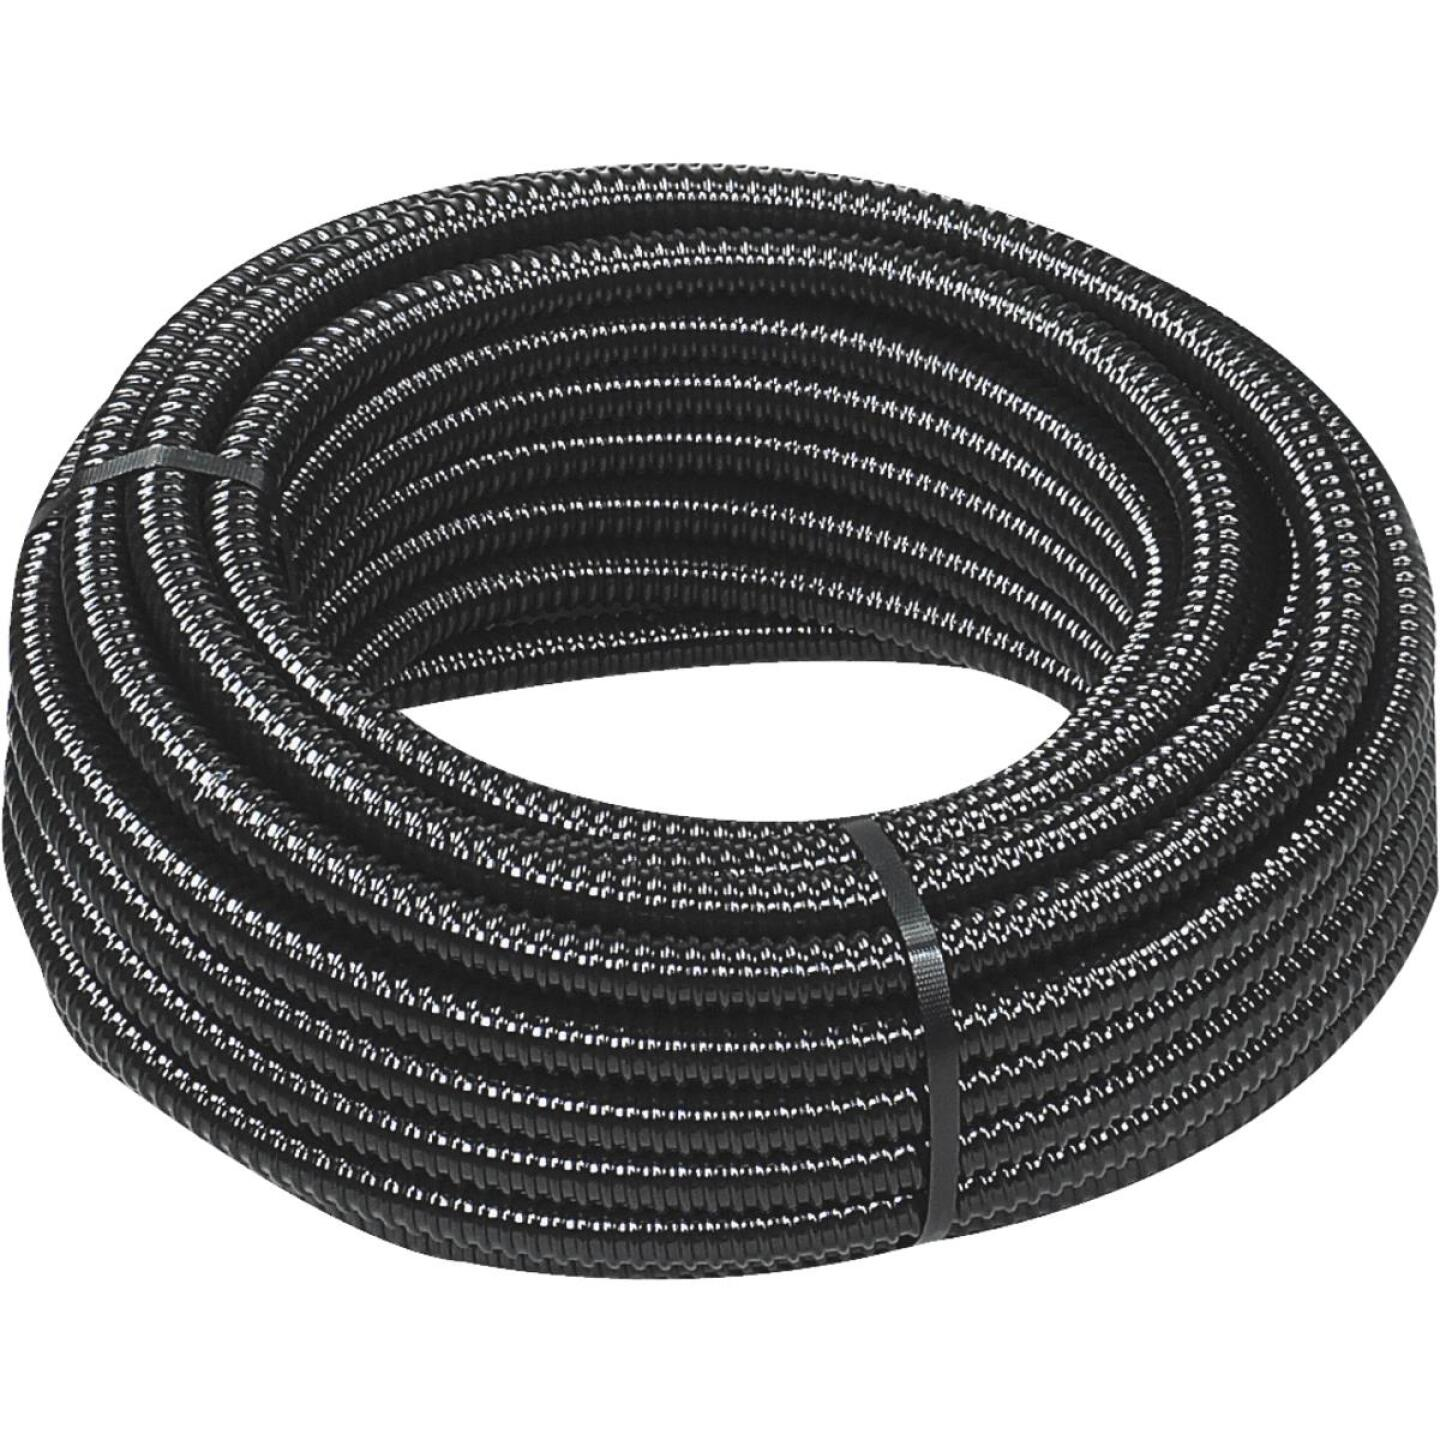 PondMaster 20 Ft. L. x 1 In. Dia. Corrugated PVC Pond Tubing Image 1